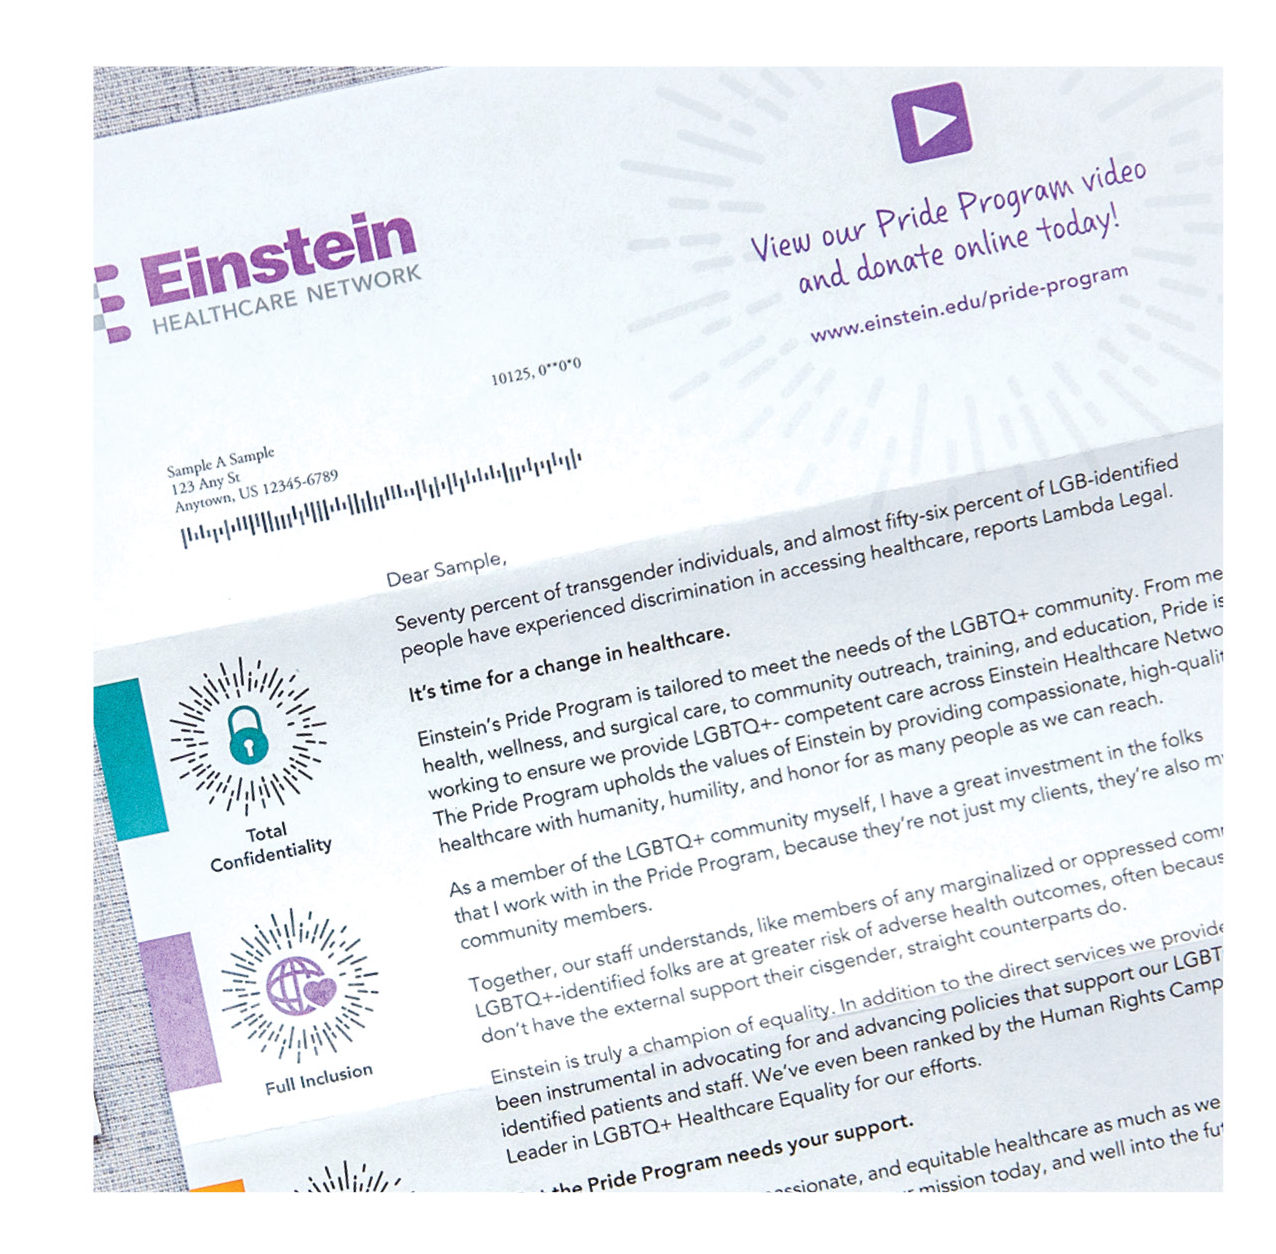 einstein healthcare network appeal letter with variable data